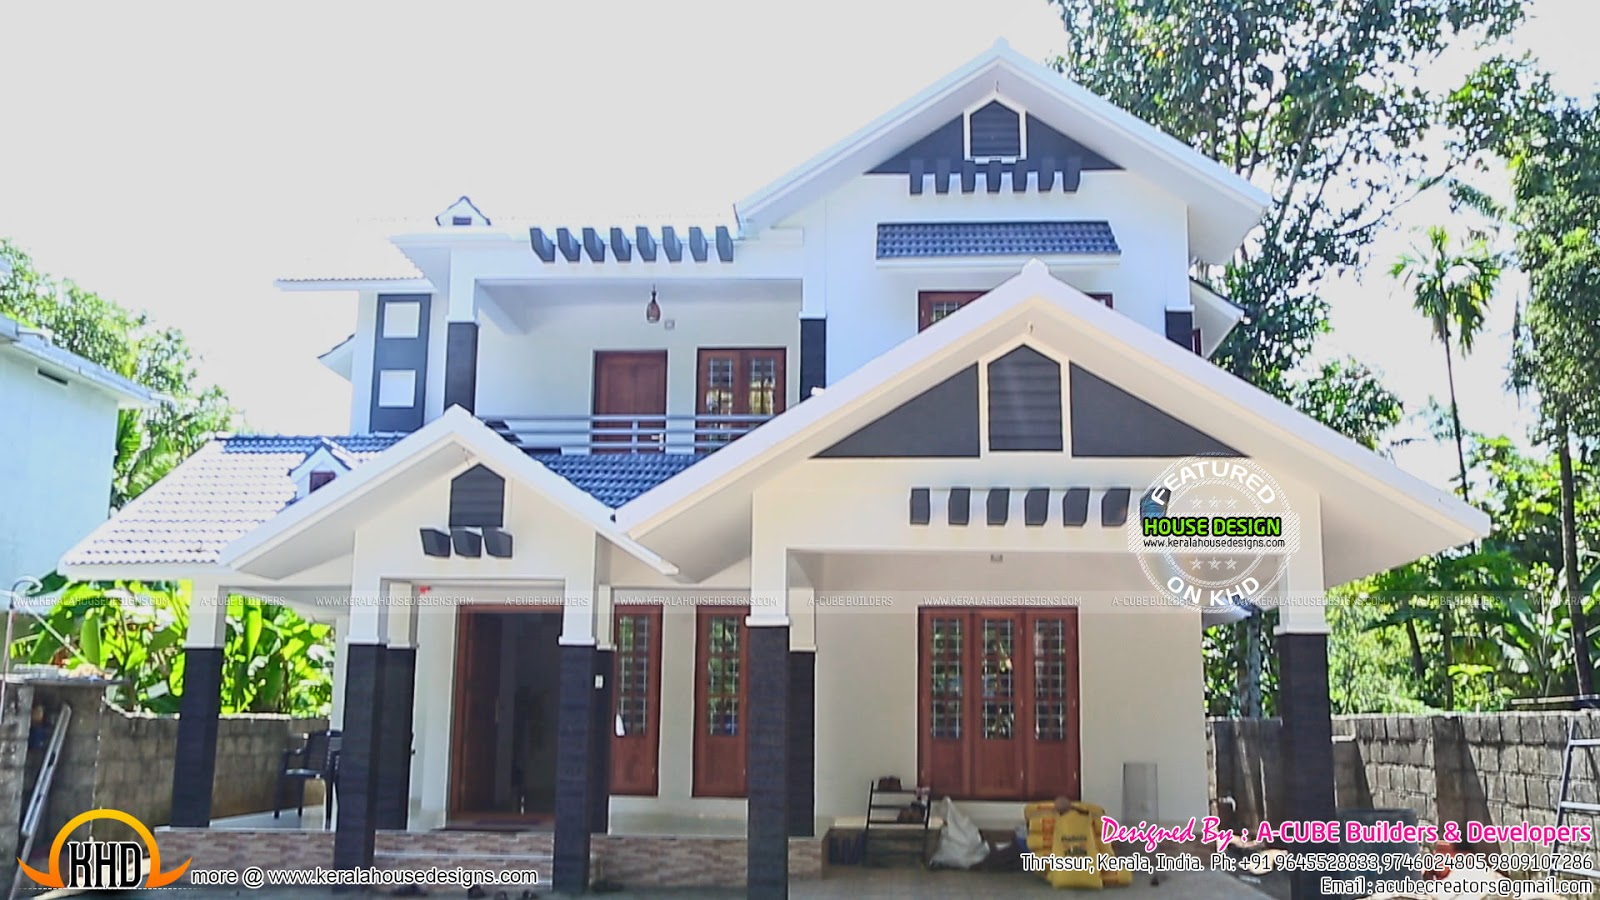 New house plans for 2016 starts here kerala home design for New house blueprints